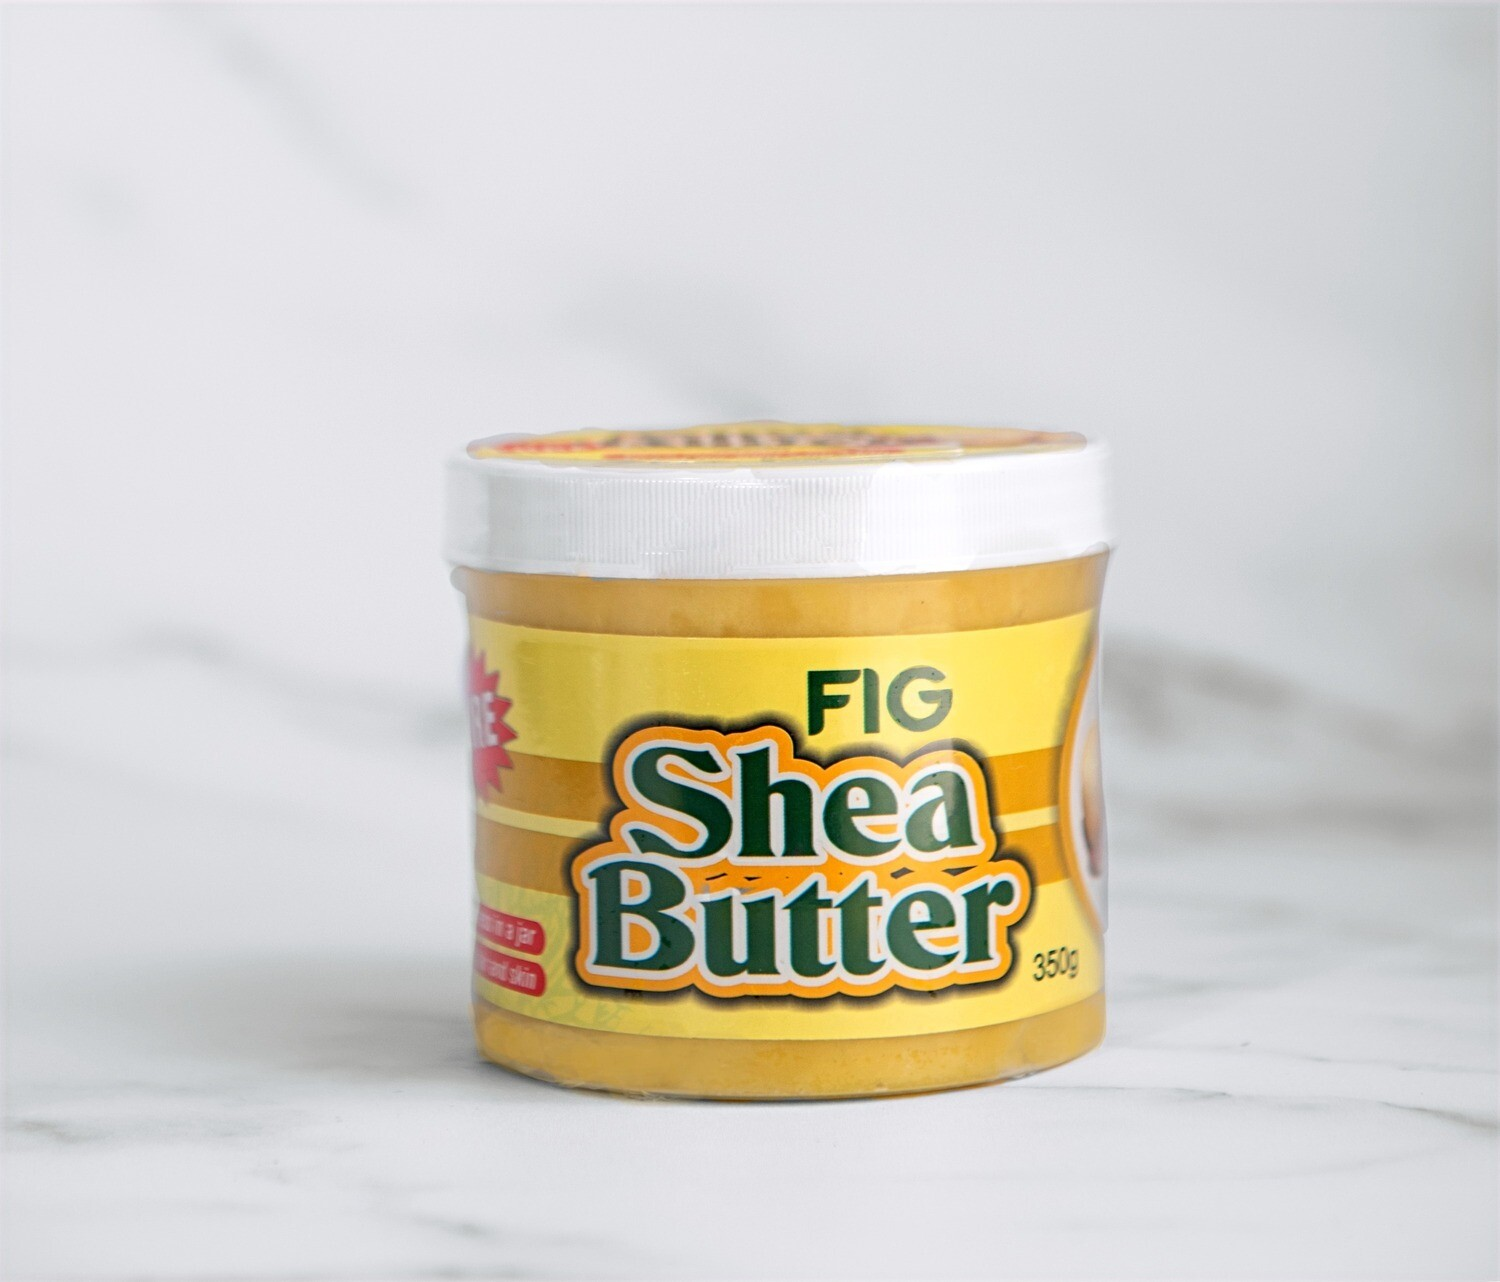 FIGTREE Shea Butter (350g)